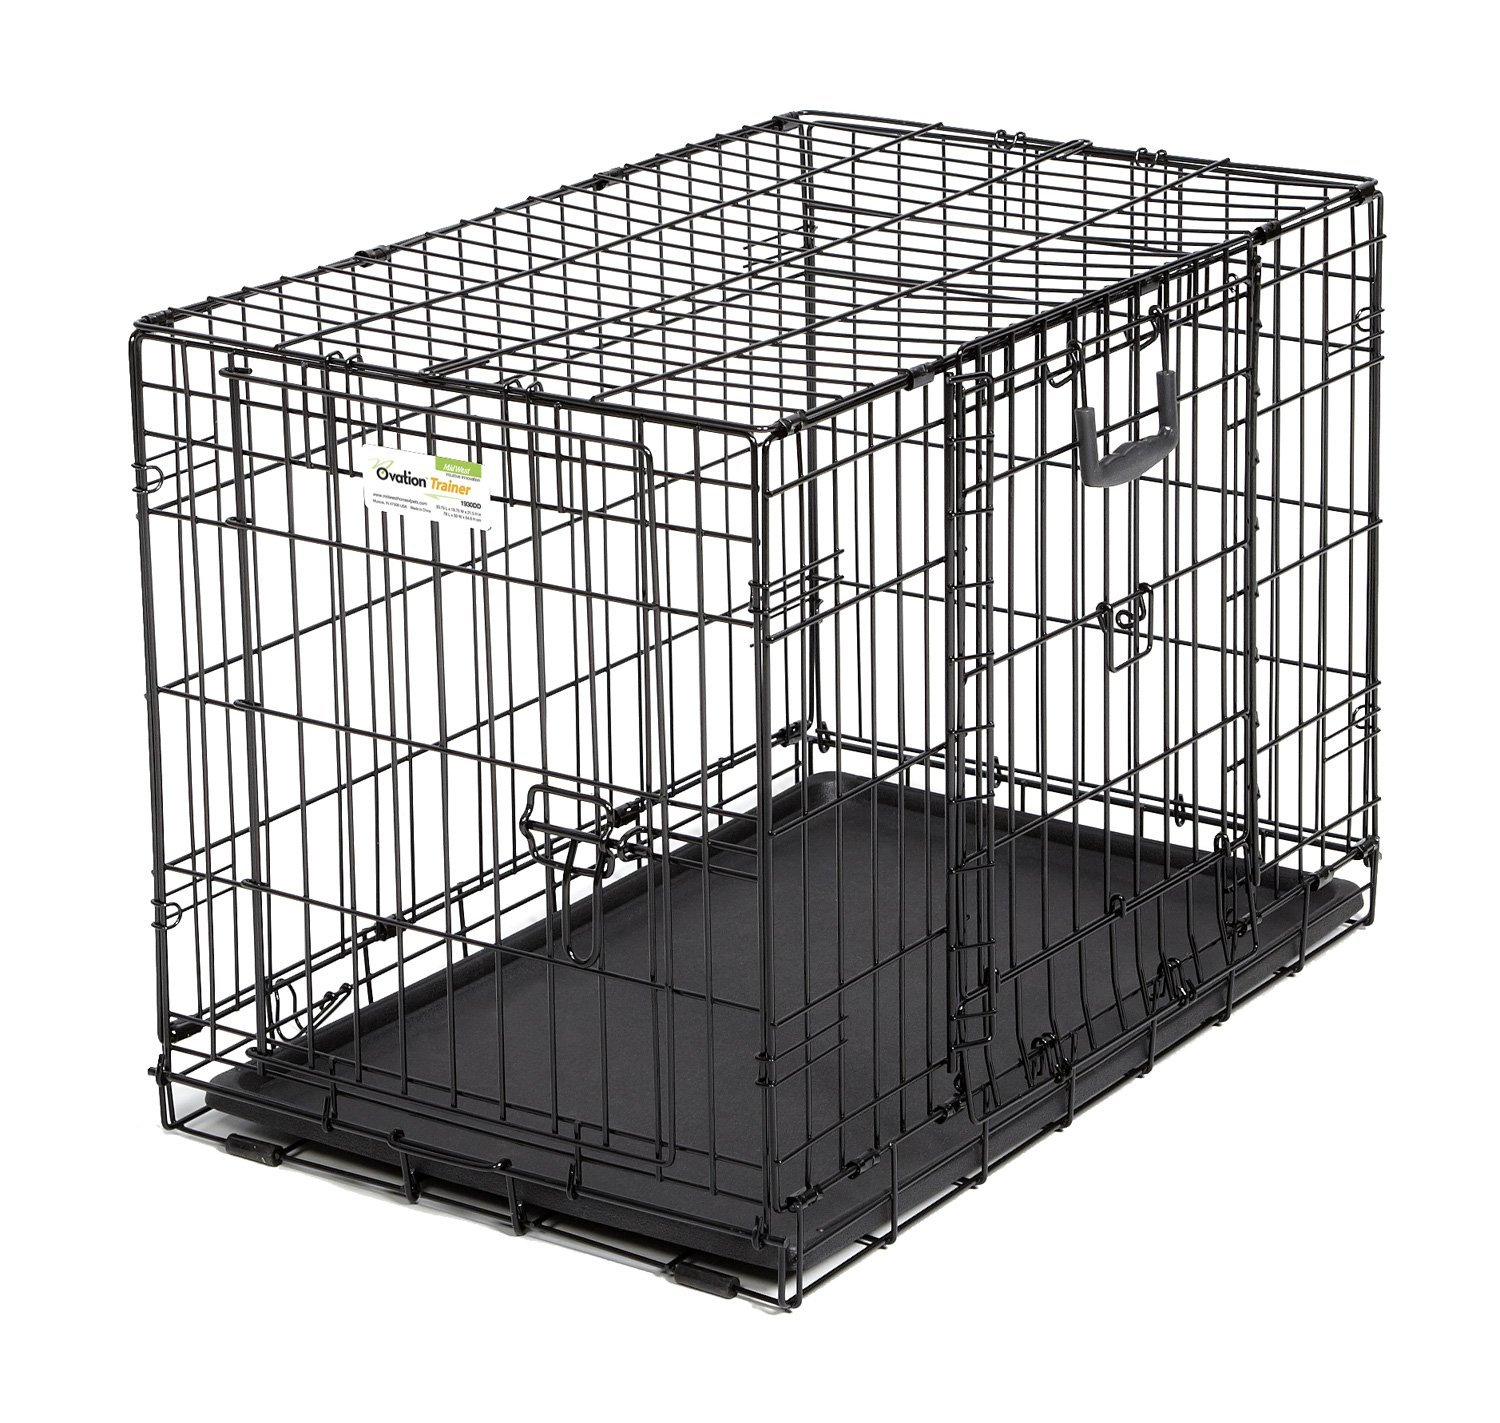 midwest dog crates midwest icrate single door folding dog crates dog crates amazon - Collapsible Dog Crate